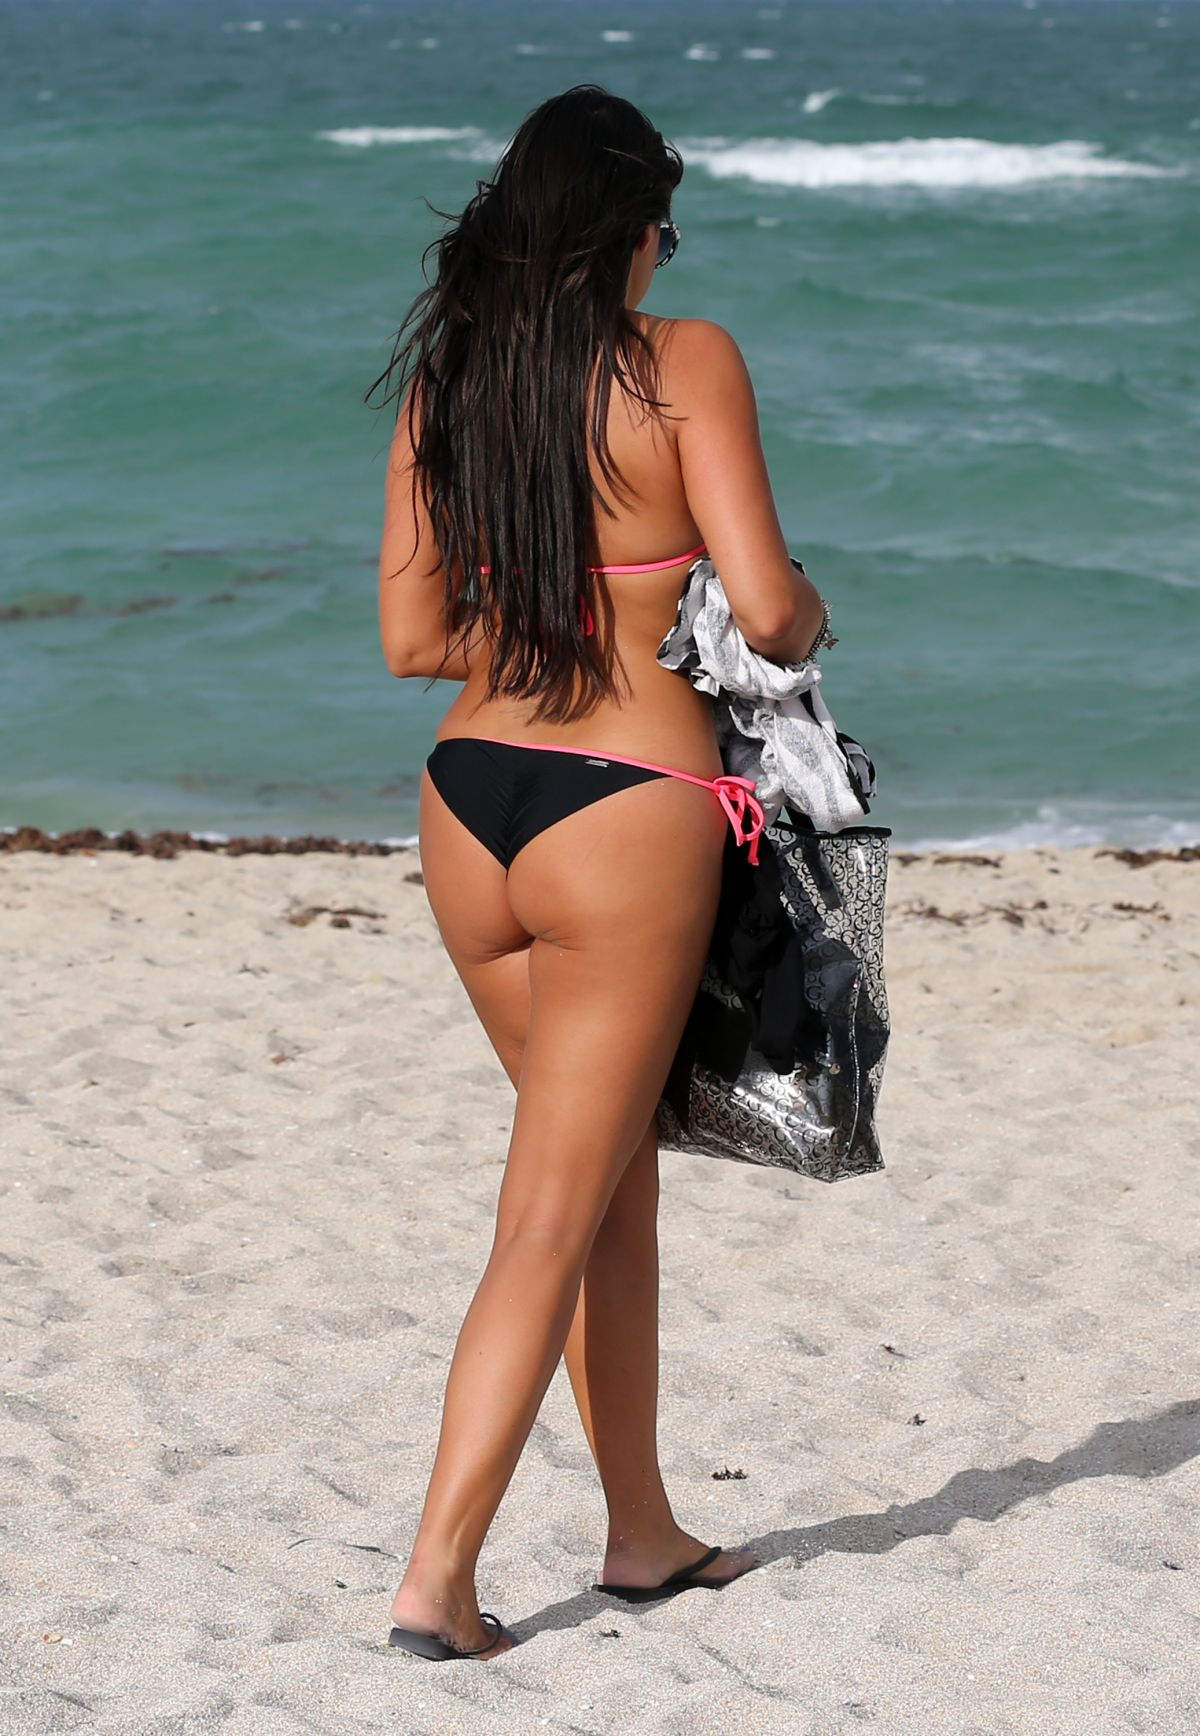 Claudia Romani in Bikini on South Beach in Miami 2 Pic 35 of 35